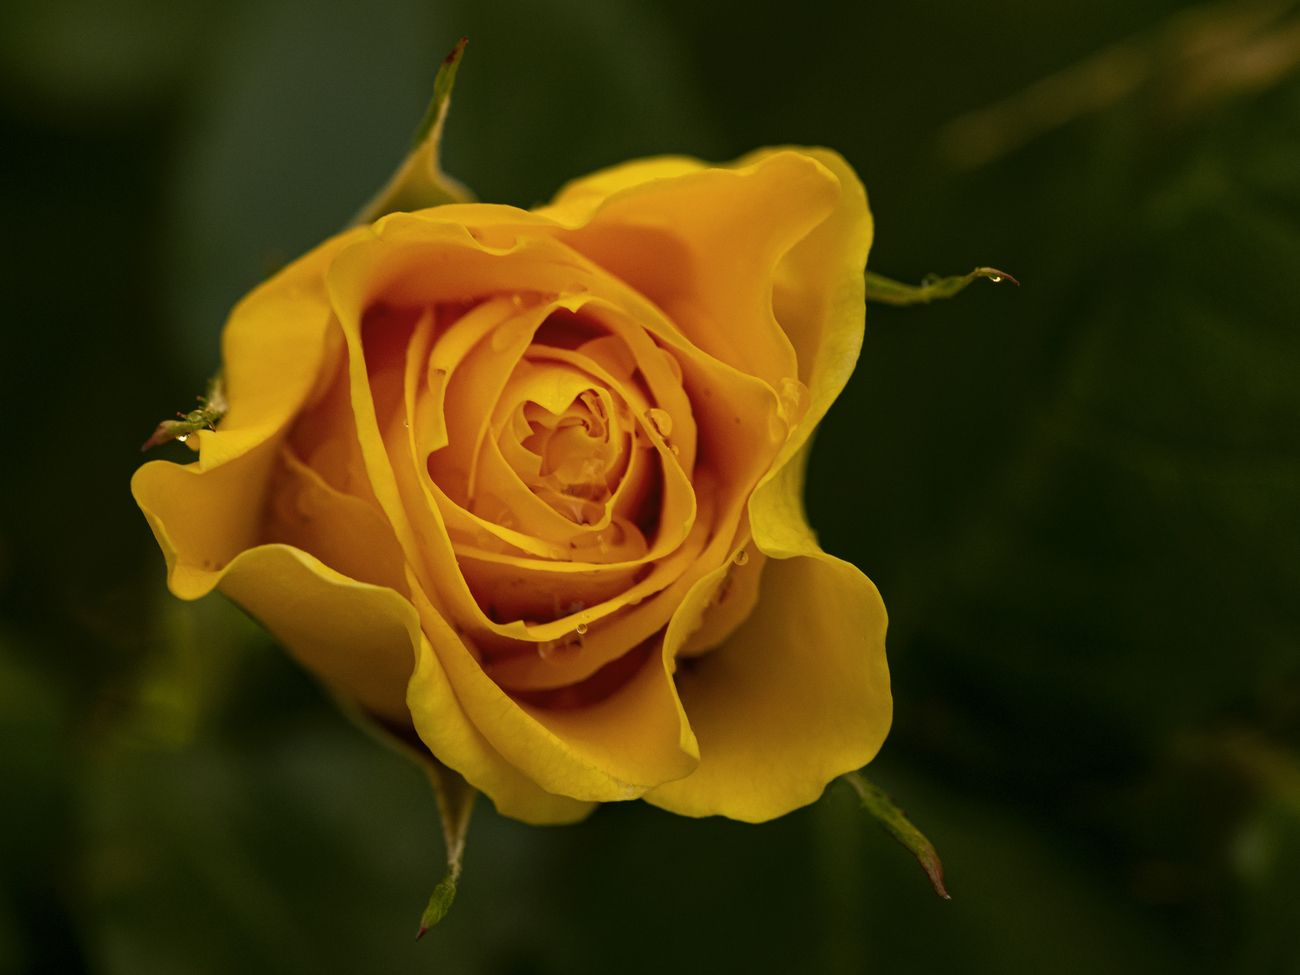 so finally got a decent yellow rose shot  after trying lots of different setting and outdoor lighting conditions, I am happy with this one as I feel it captures the essence of a yellow rose